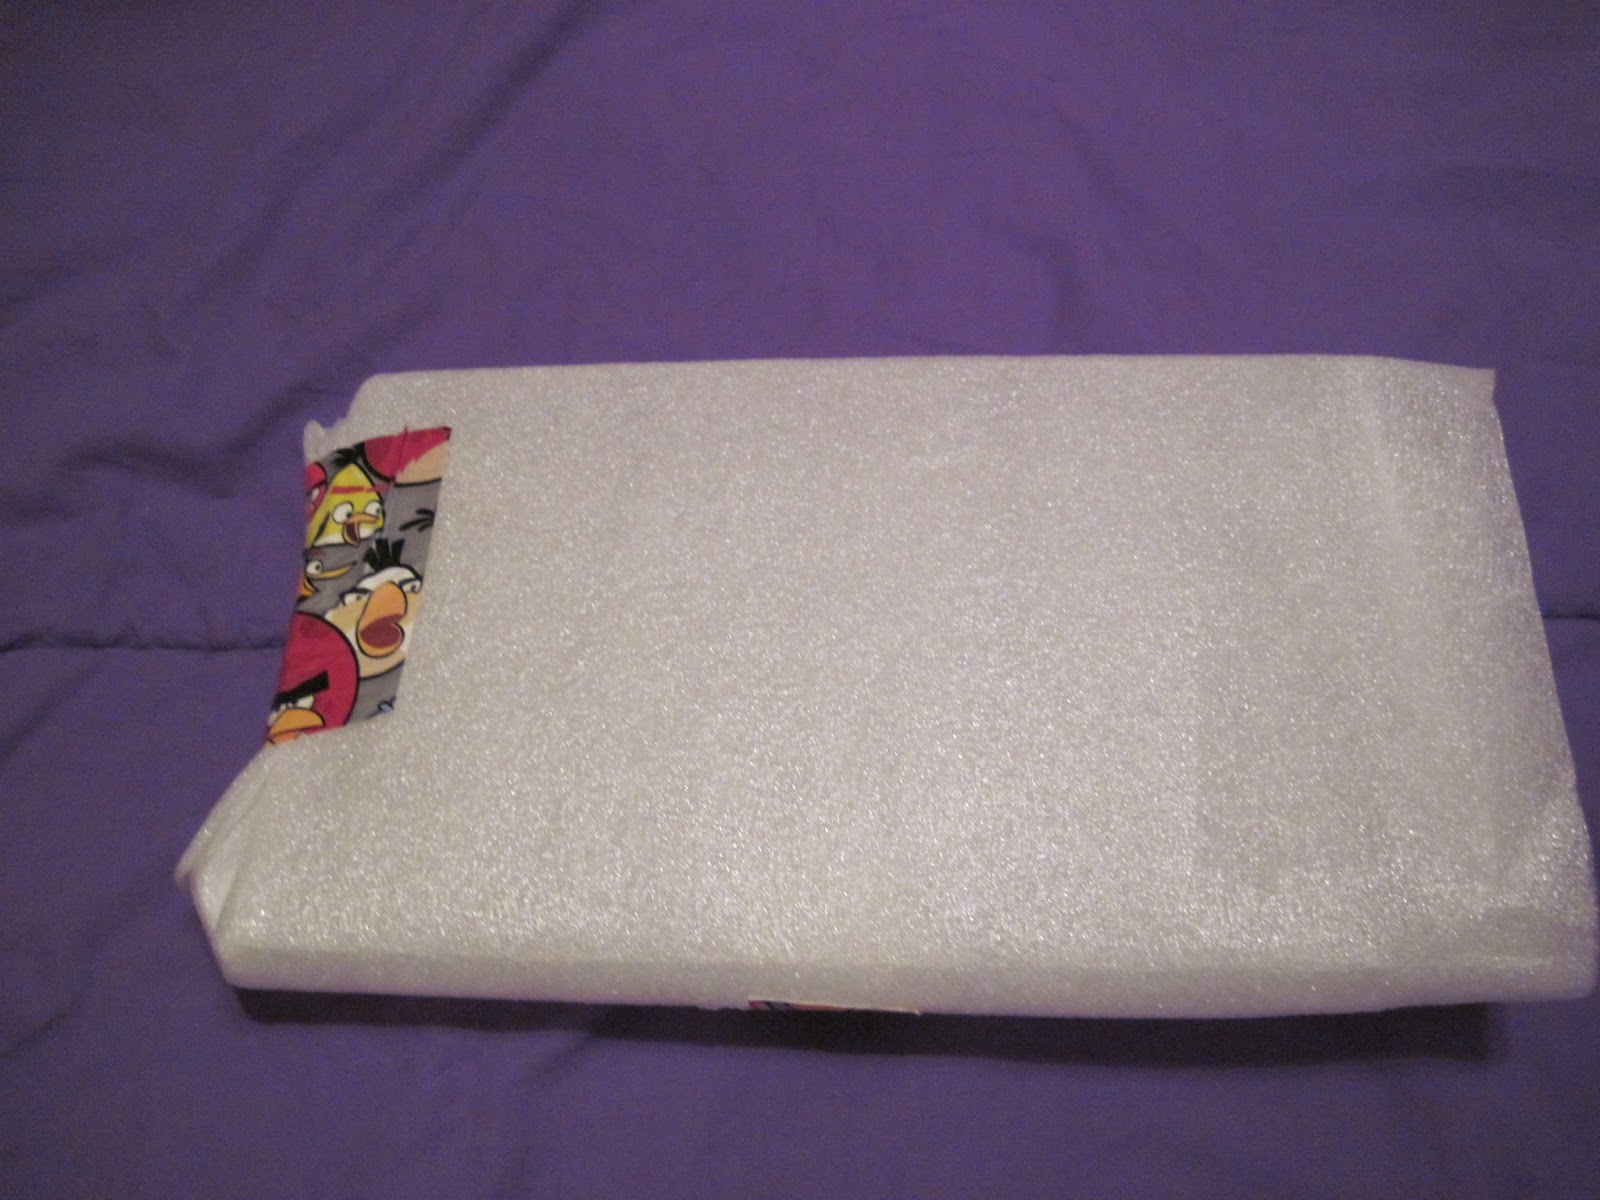 foam sleeve for book, with 'Angry Birds' tape